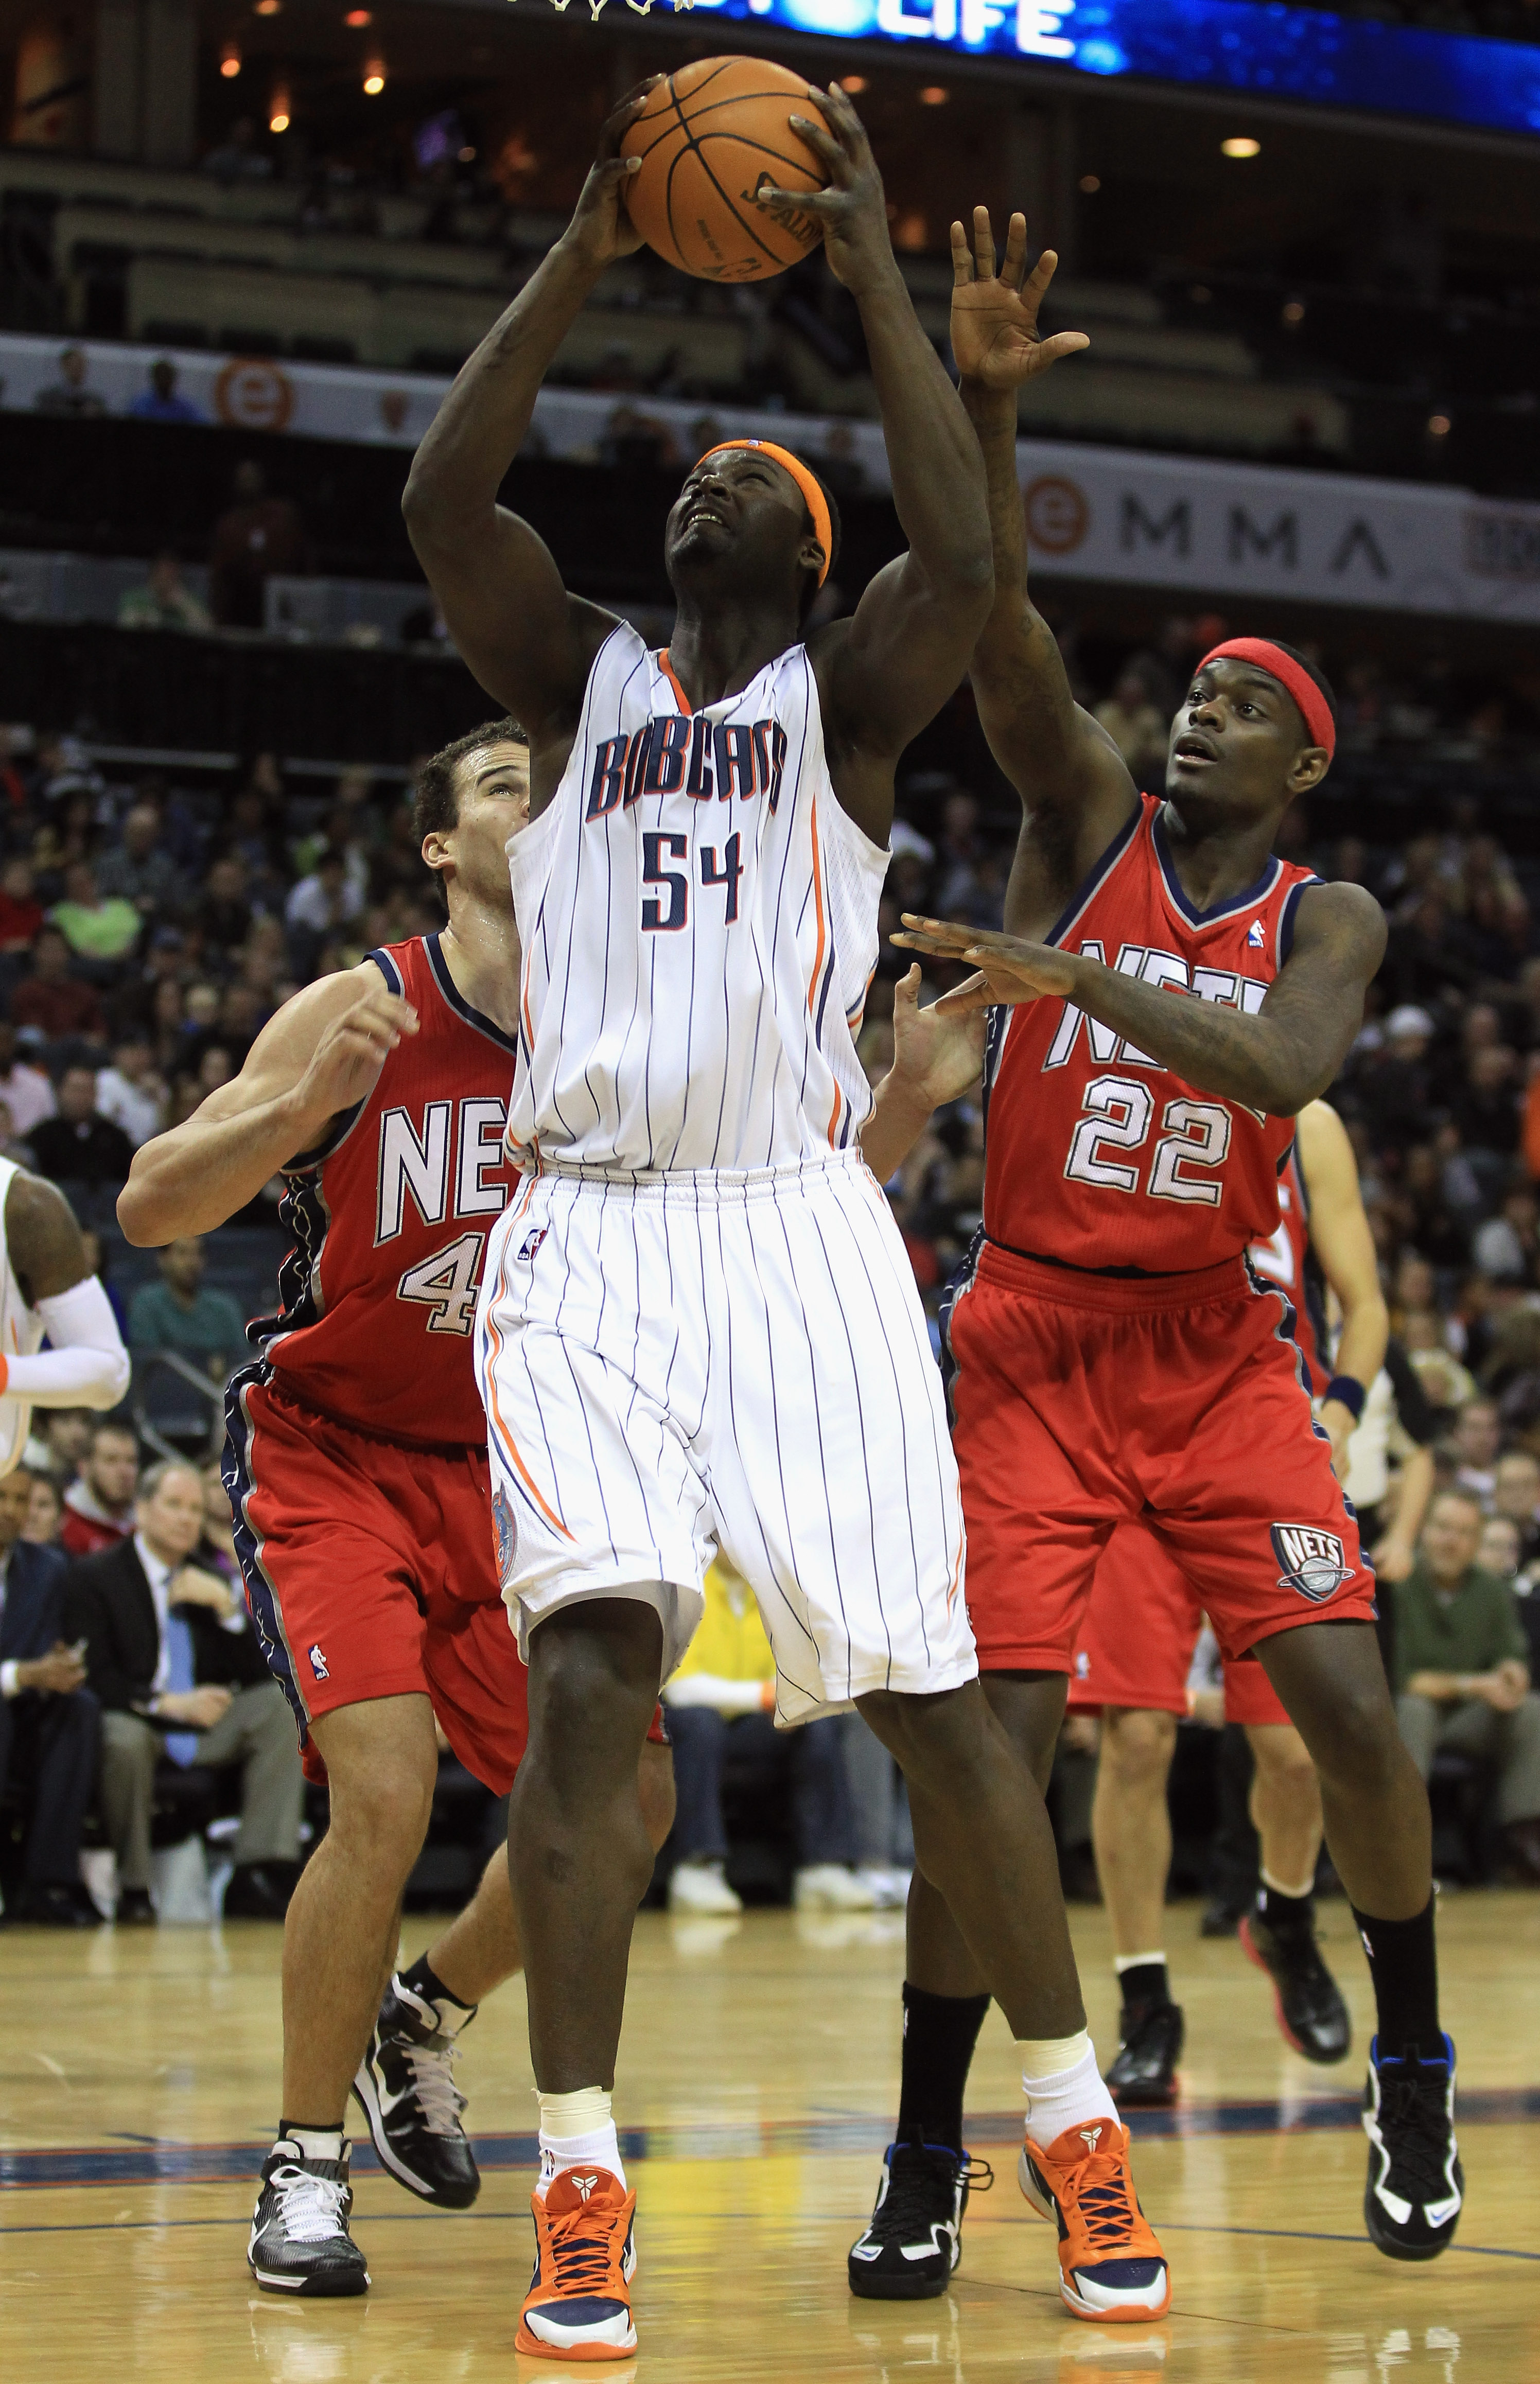 CHARLOTTE, NC - FEBRUARY 11:  Teammates Kris Humphries #43 and Anthony Morrow #22 of the New Jersey Nets try to stop Kwame Brown #54 of the Charlotte Bobcats during their game at Time Warner Cable Arena on February 11, 2011 in Charlotte, North Carolina. N